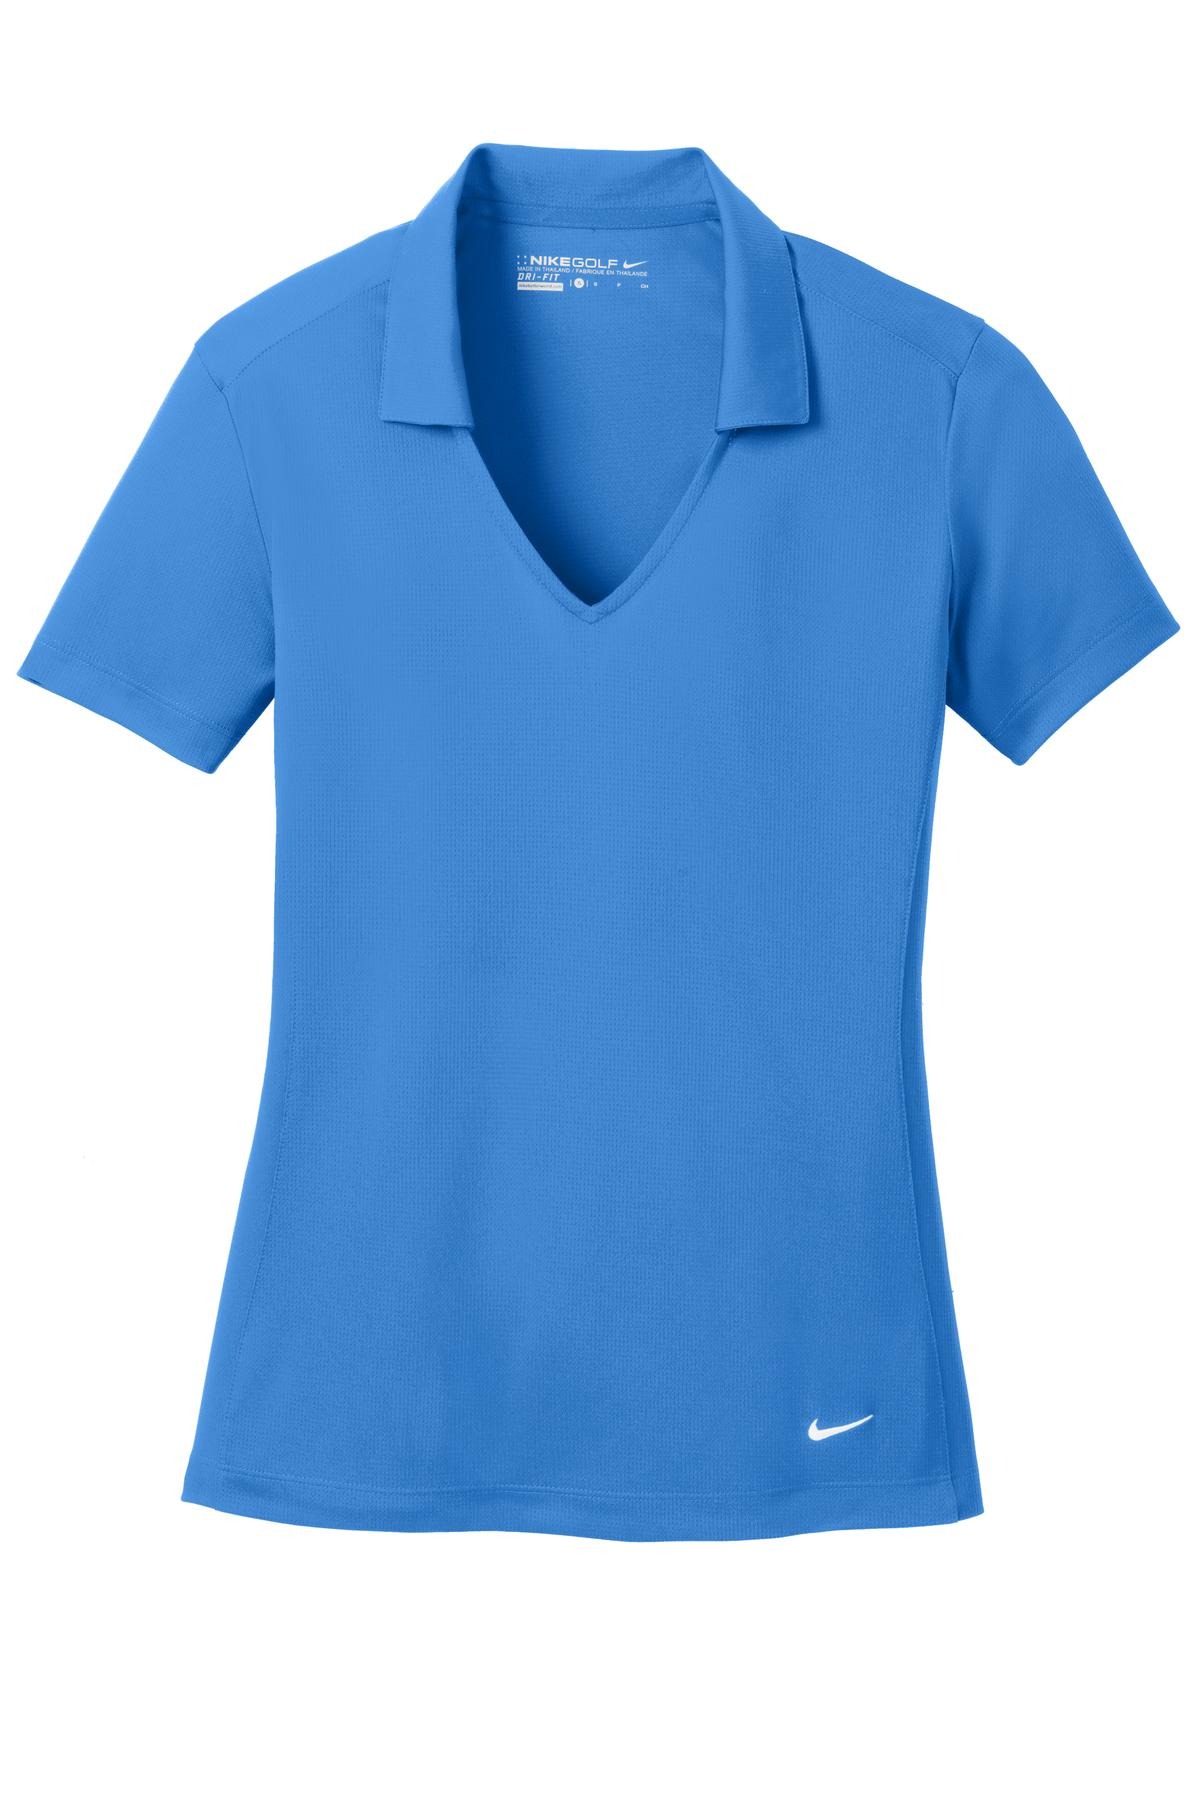 Brisk Blue Nike Ladies Dri-FIT Vertical Mesh Polo.